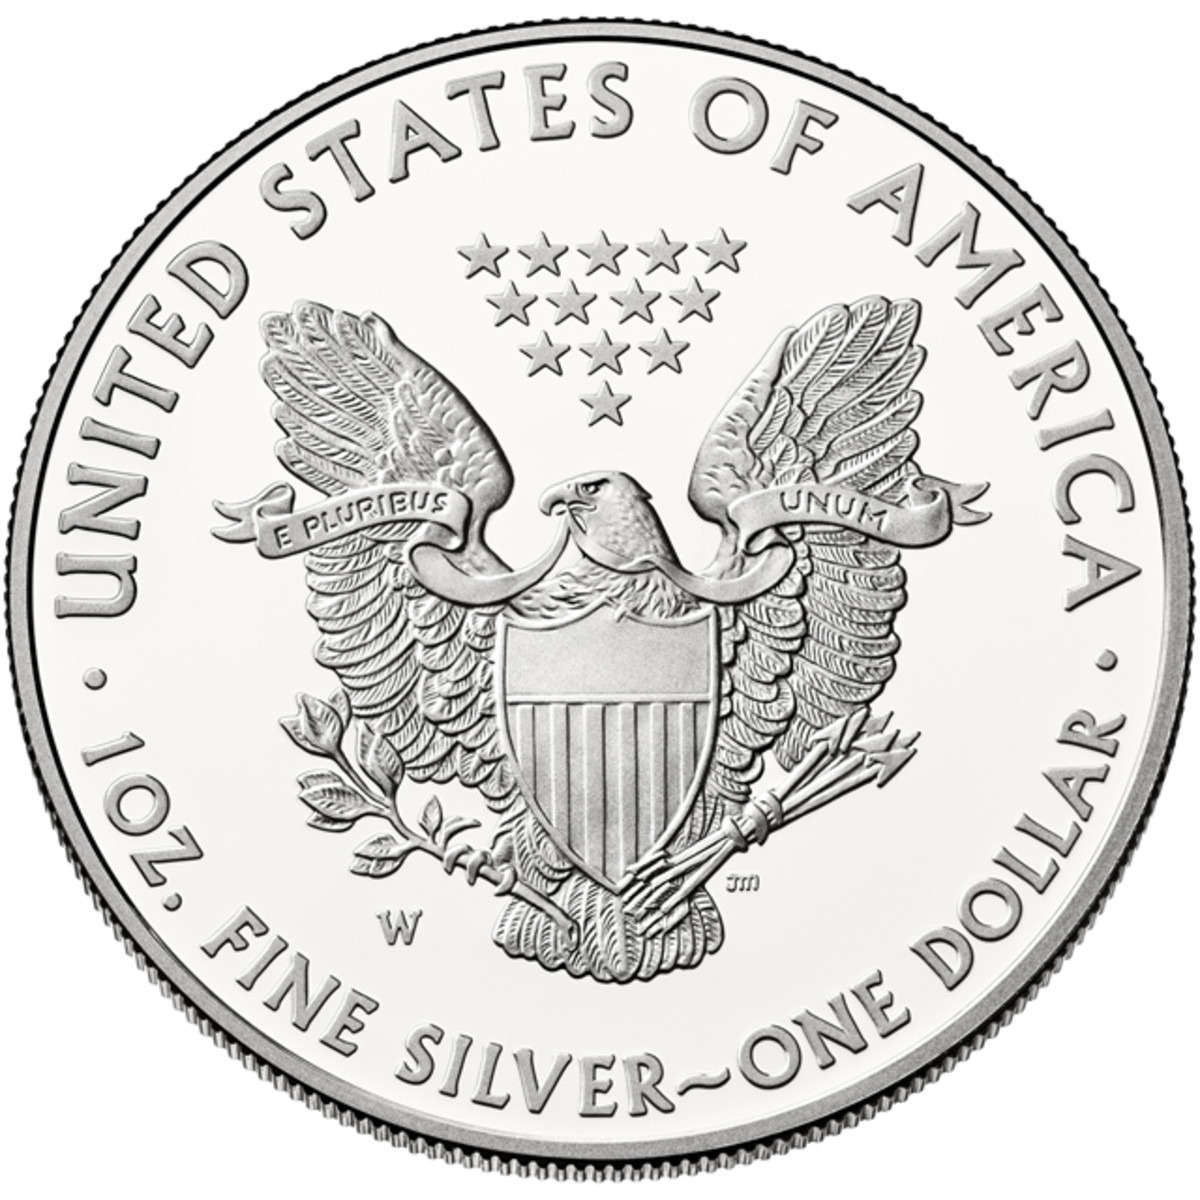 In a bill signed into law Dec. 4, 2016's collector proof and uncirculated silver Eagle coins will have edge lettering noting their 30th anniversary.